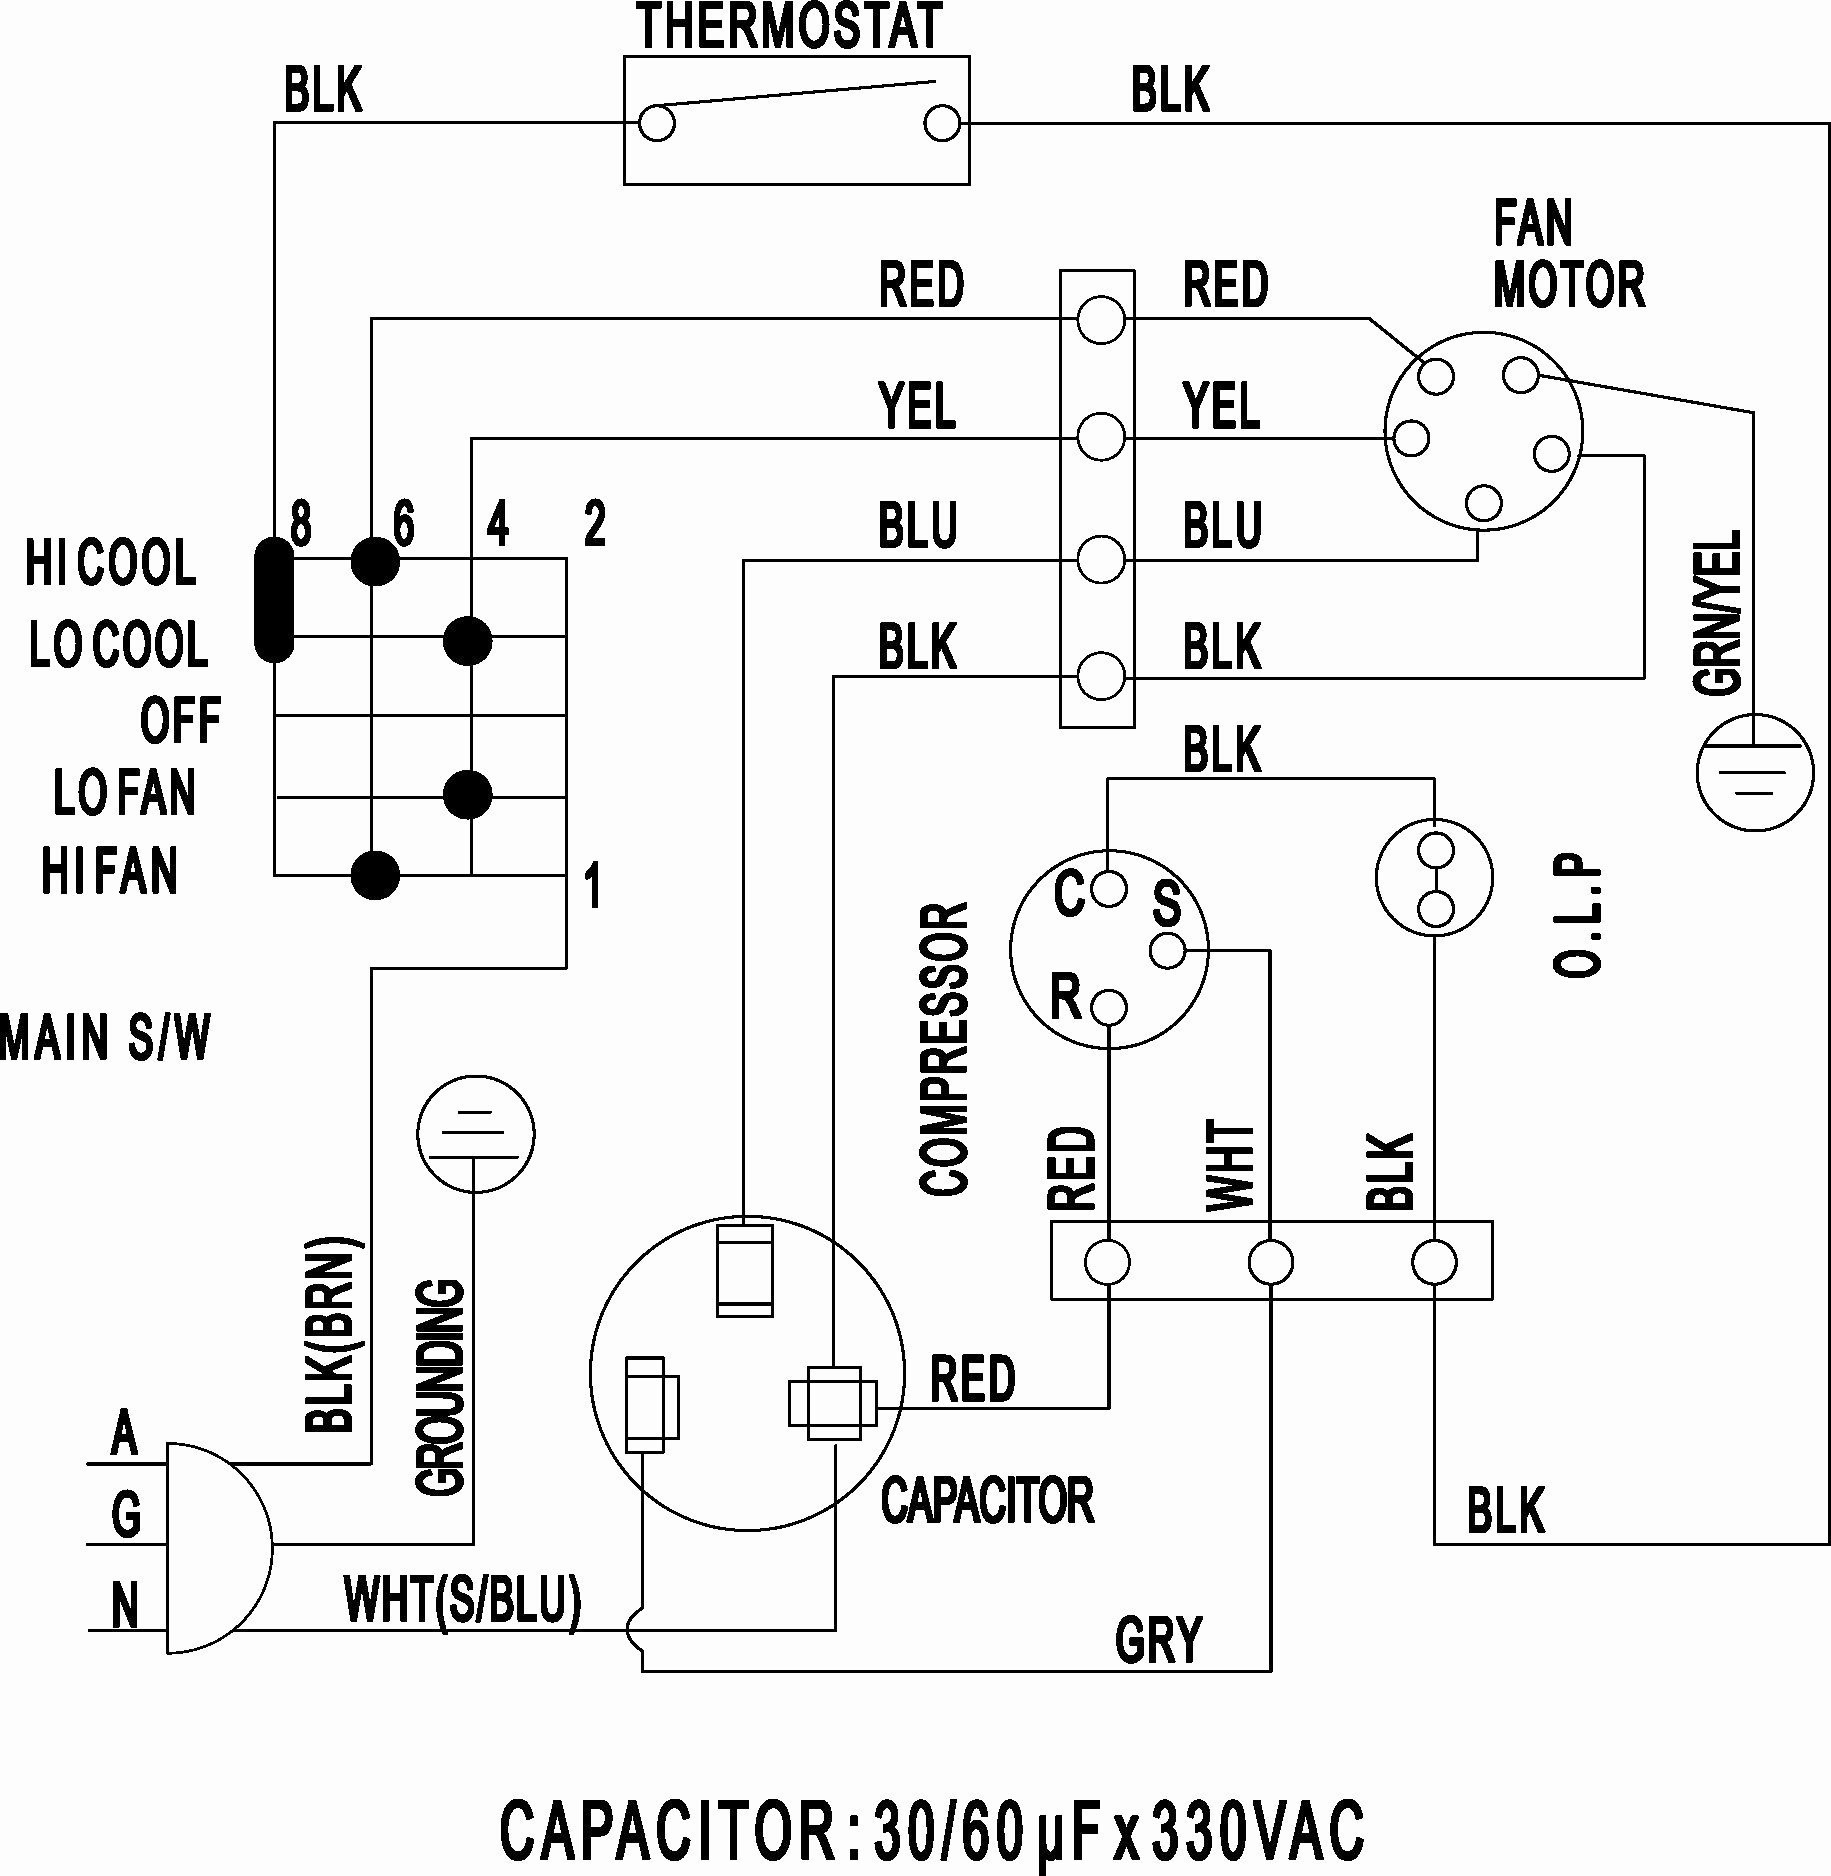 hight resolution of hvac wiring diagrams wiring diagram blog nec wiring diagrams hvac